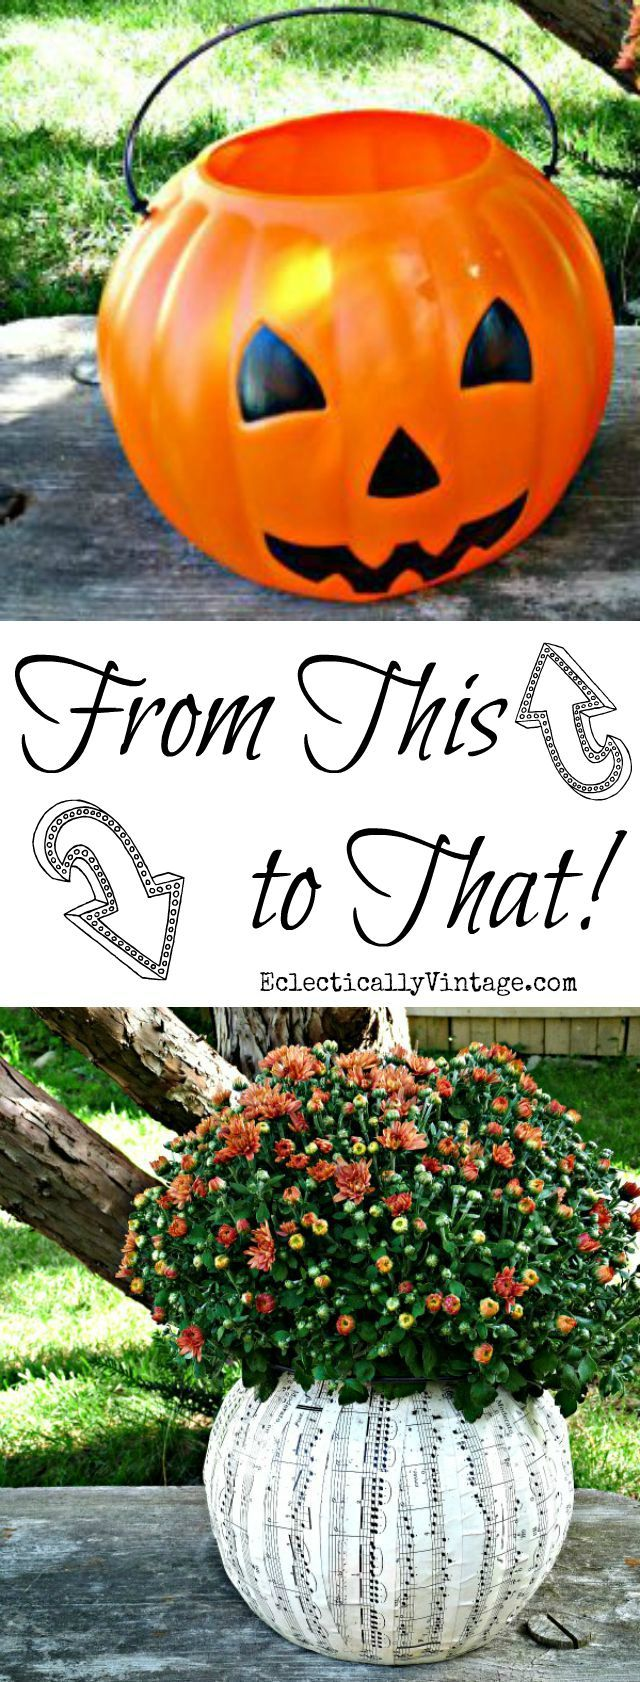 Plastic Pumpkin Ideas - turn an ugly plastic pumpkin pail into a fun planter - step by step directions plus more creative pumpkin ideas! eclecticallyvintage.com